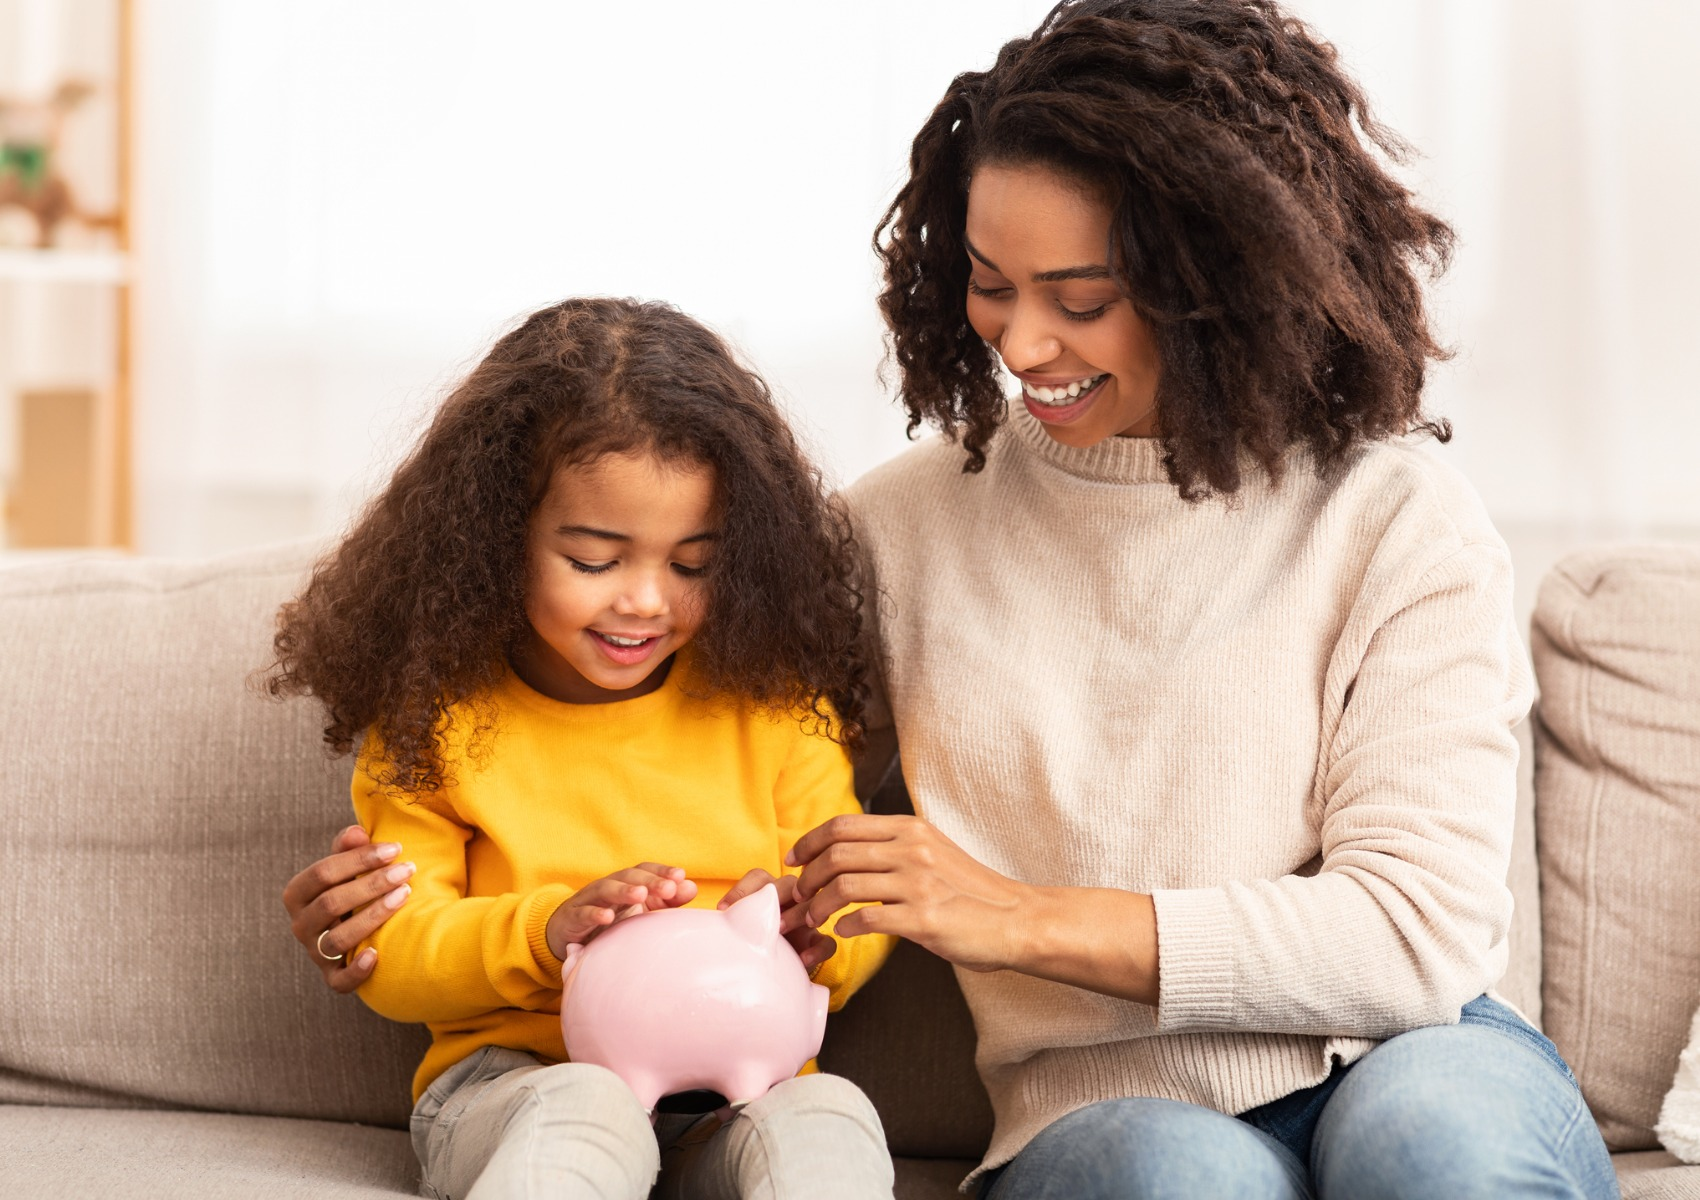 cheerful-mother-teaching-daughter-how-to-save-money-at-home-picture-id1201448916